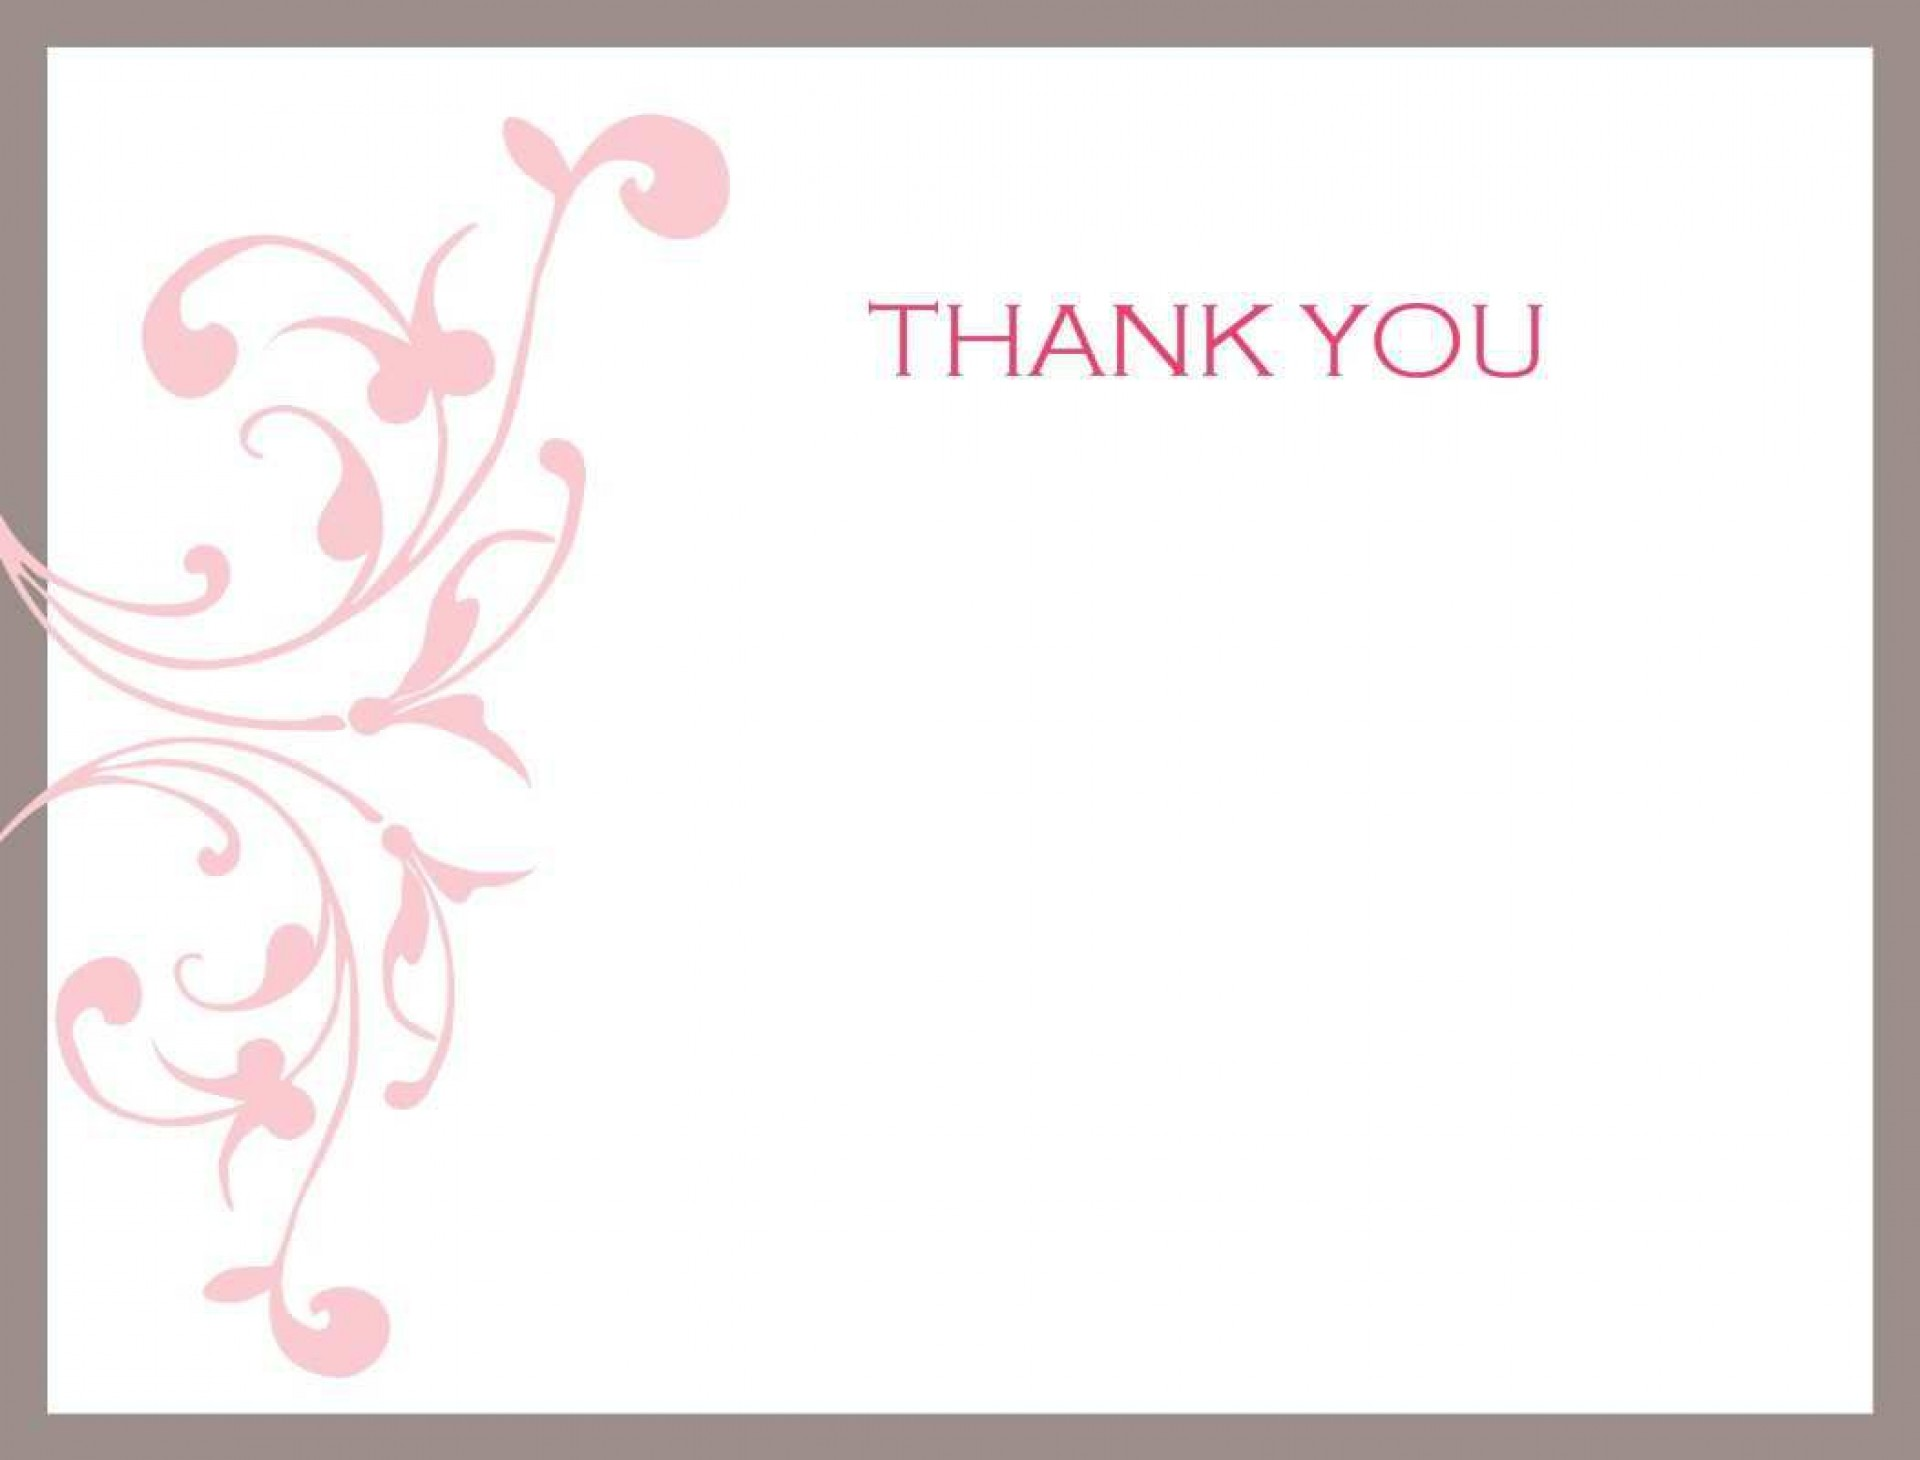 001 Marvelou Thank You Note Template Printable High Definition  Letter Baby Card Word1920